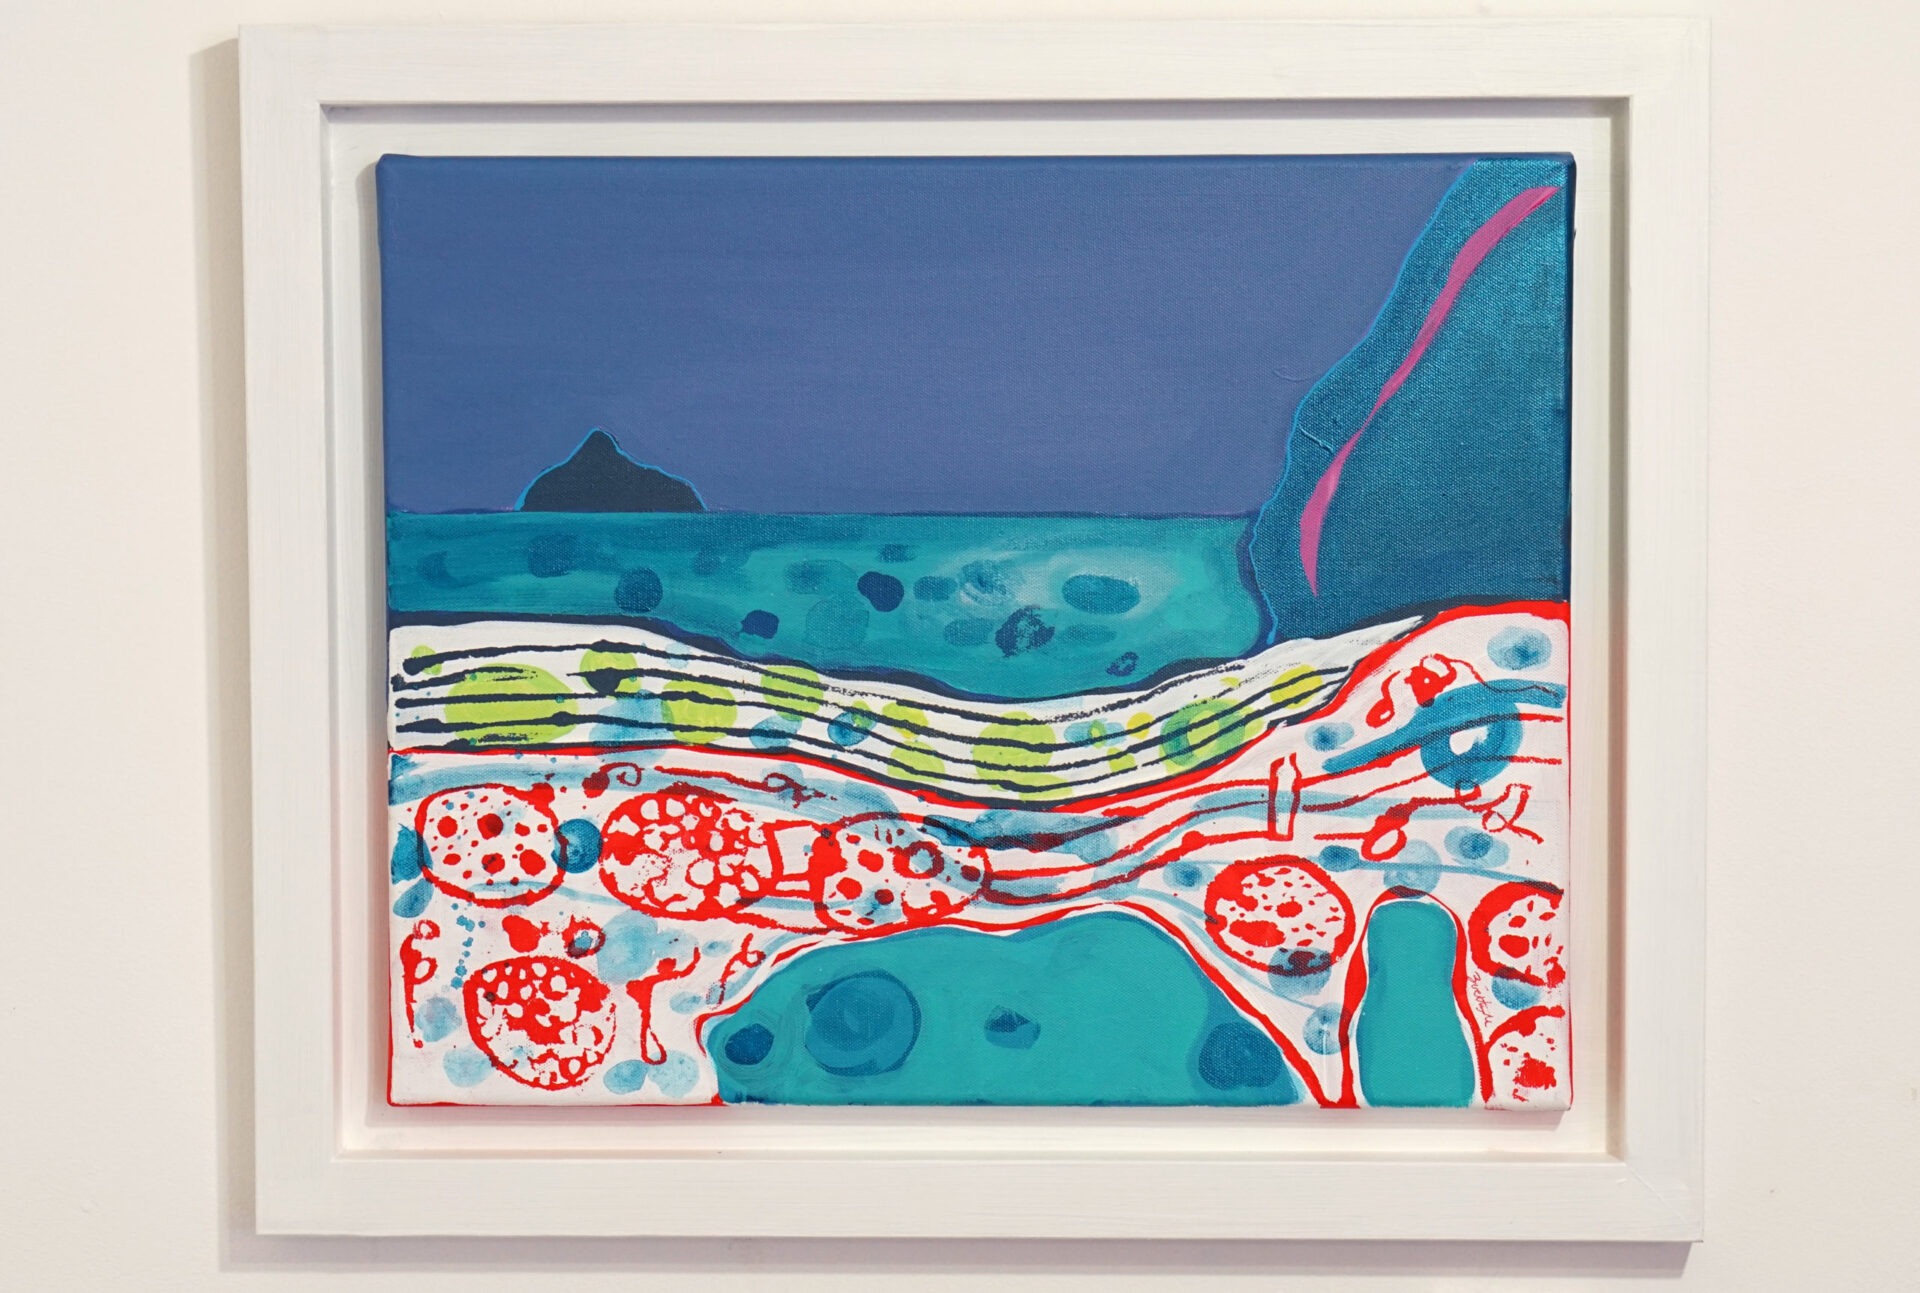 New Gallery South West Academy Of Fine And Applied Arts Penwith Gallery